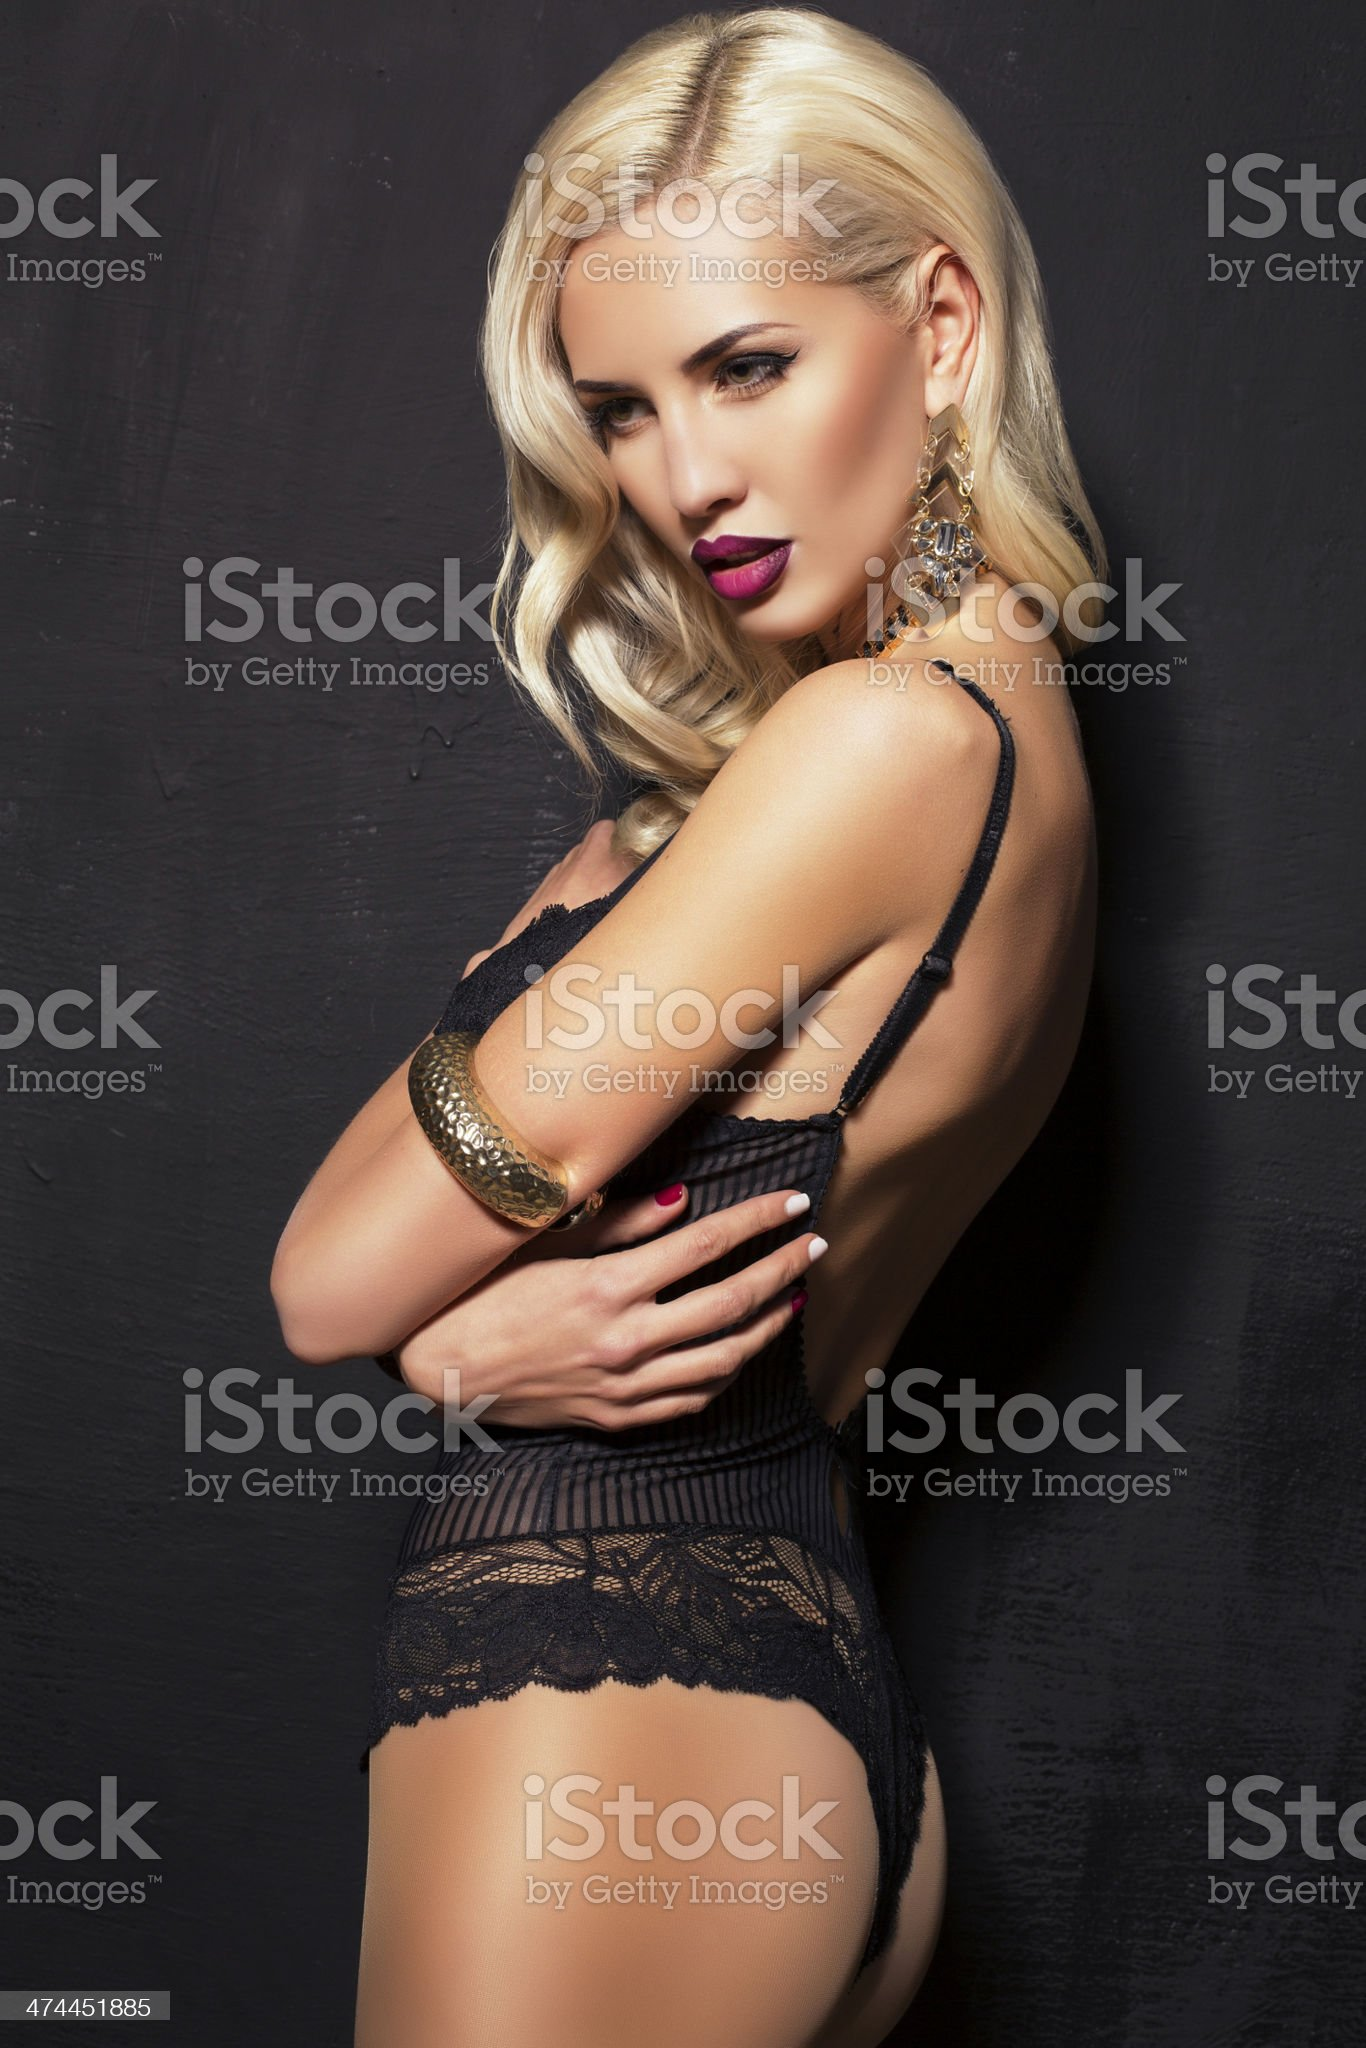 sexy blond woman in black lingerie with bijouterie royalty-free stock photo